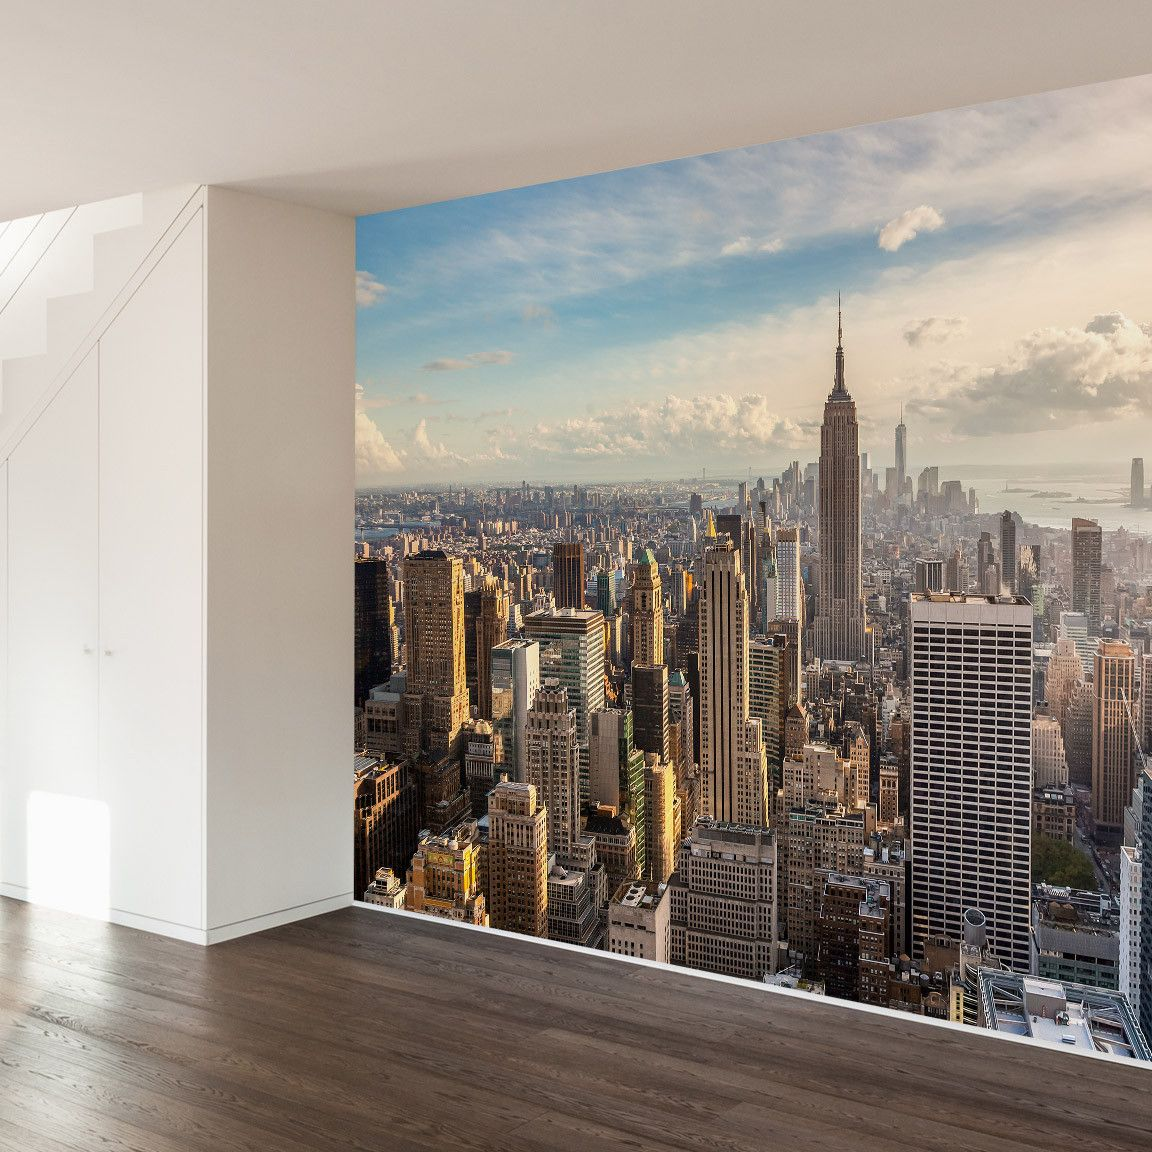 One for the dreamers wall mural decal wall mural decals for Cityscape murals photo wall mural